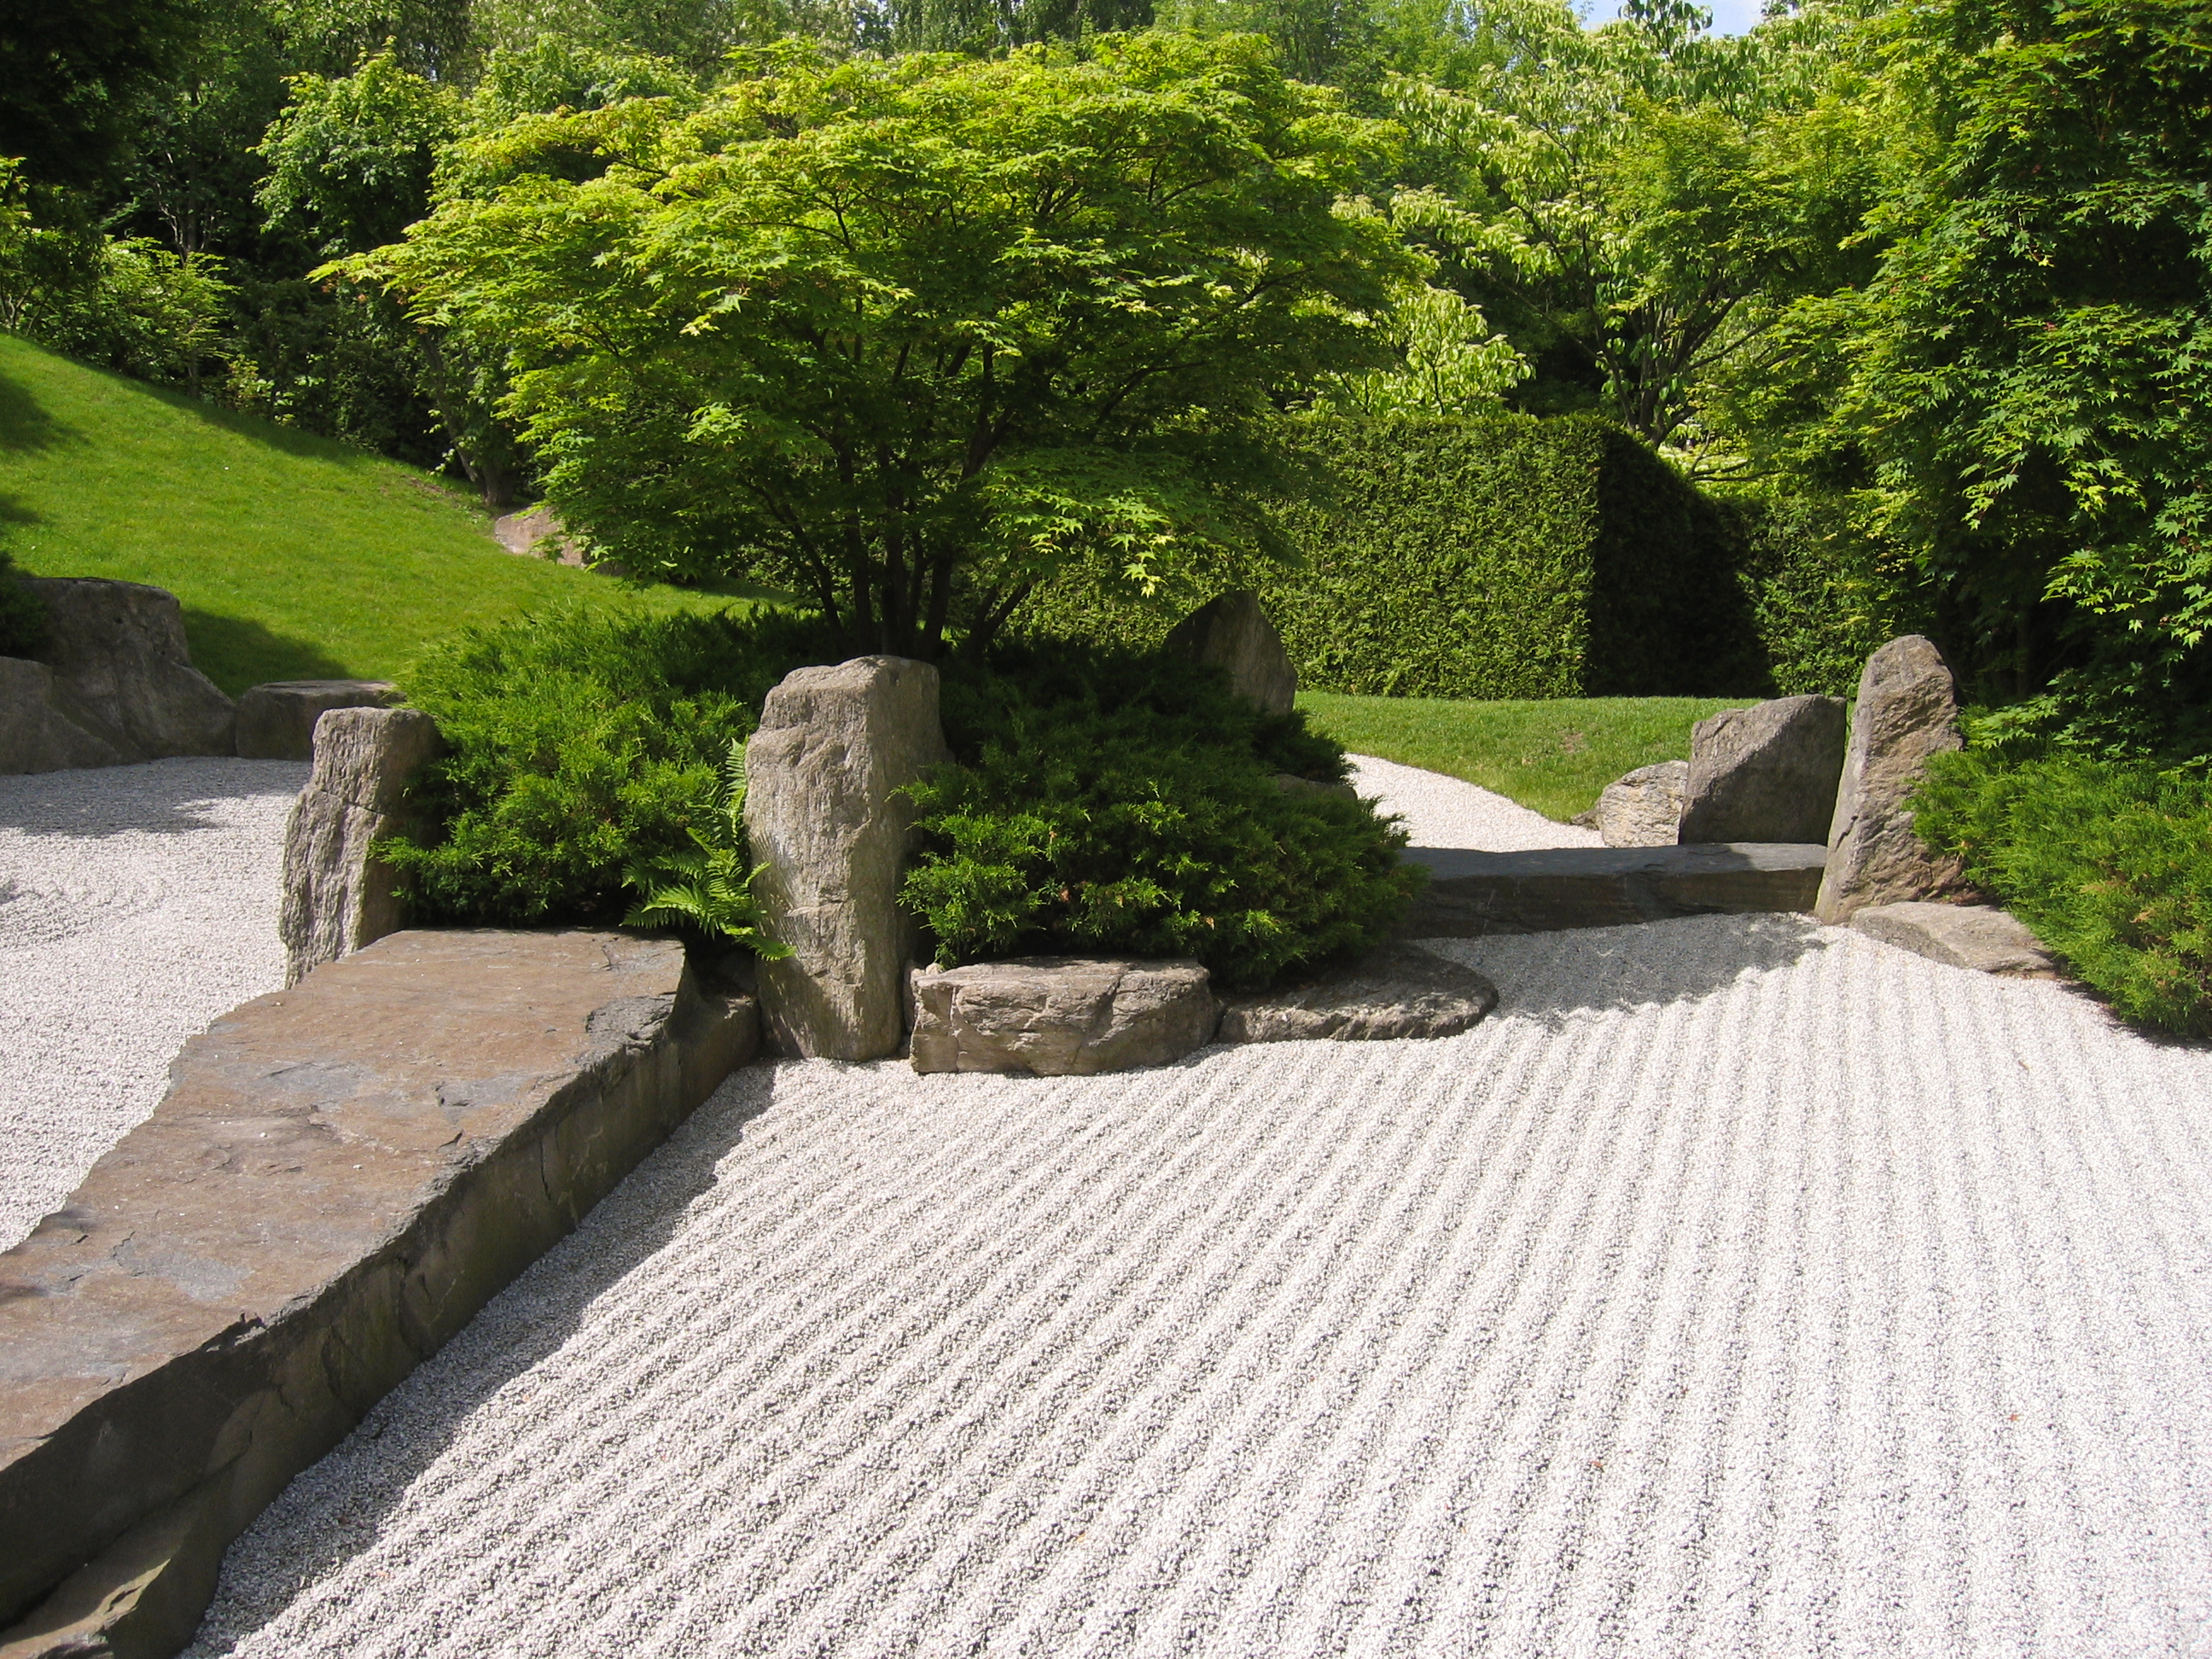 Garden design common garden stylesse landscape for Japanese landscape architecture